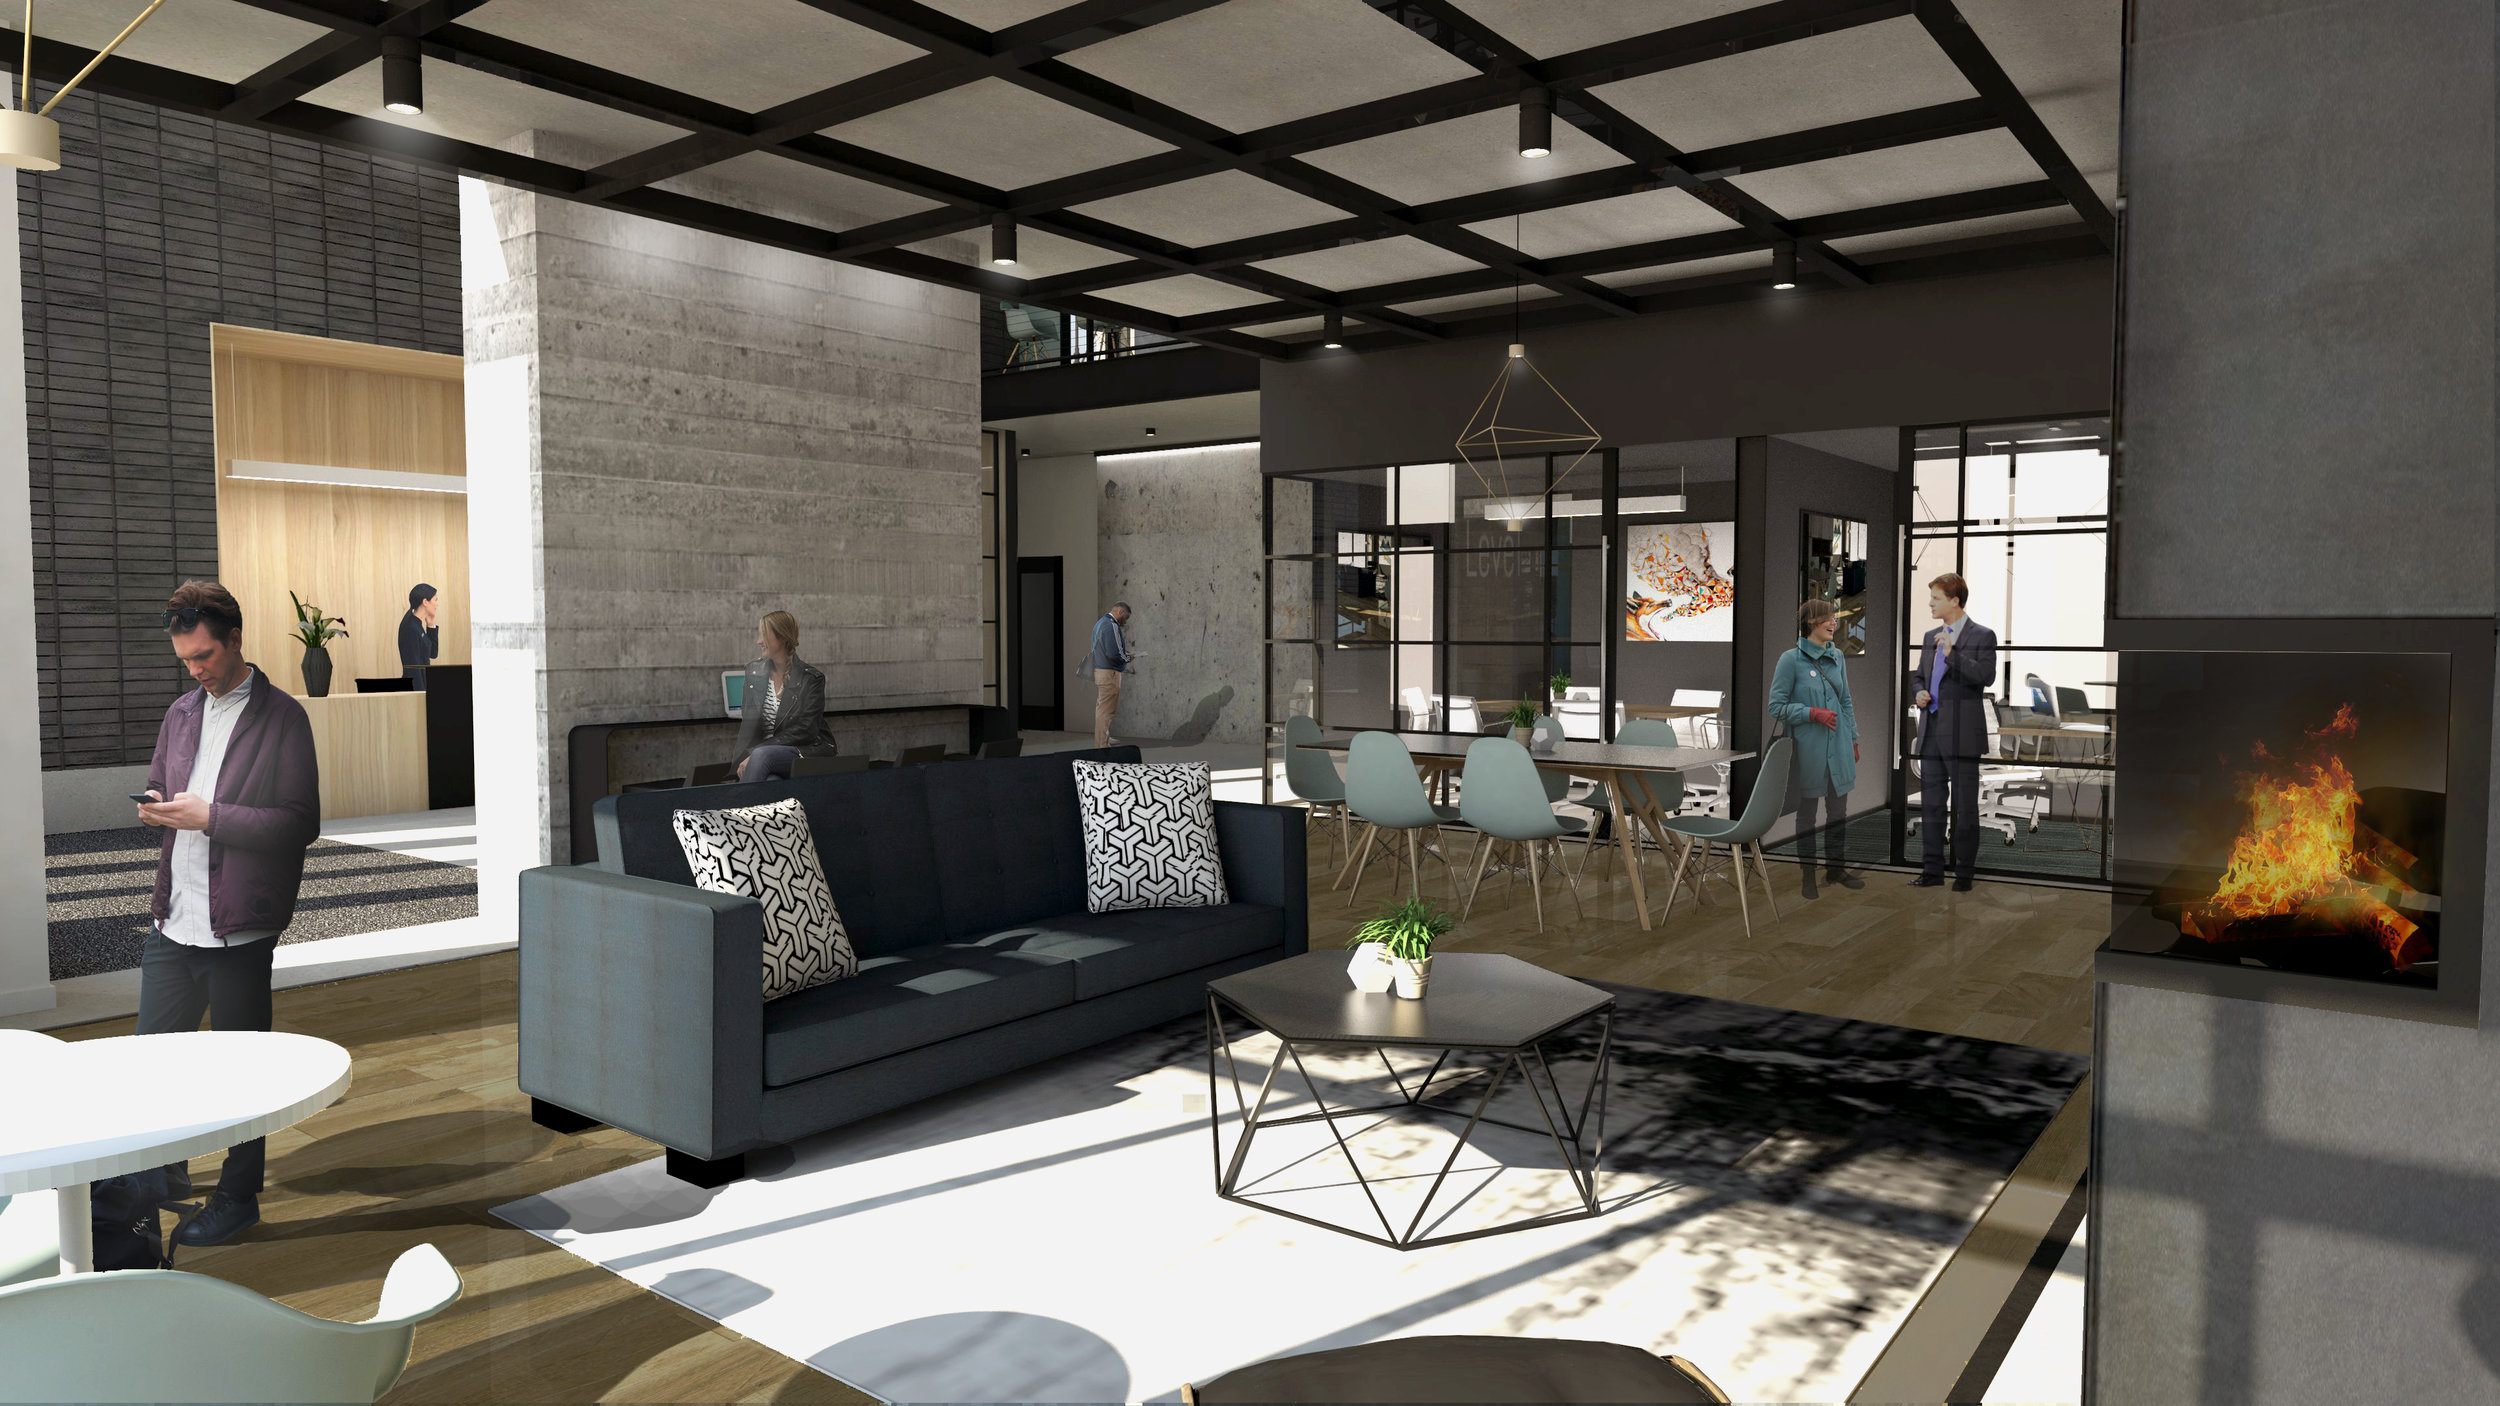 Work done for Ferguson Architecture - Main Lobby  (Design by me and others, rendering by others)